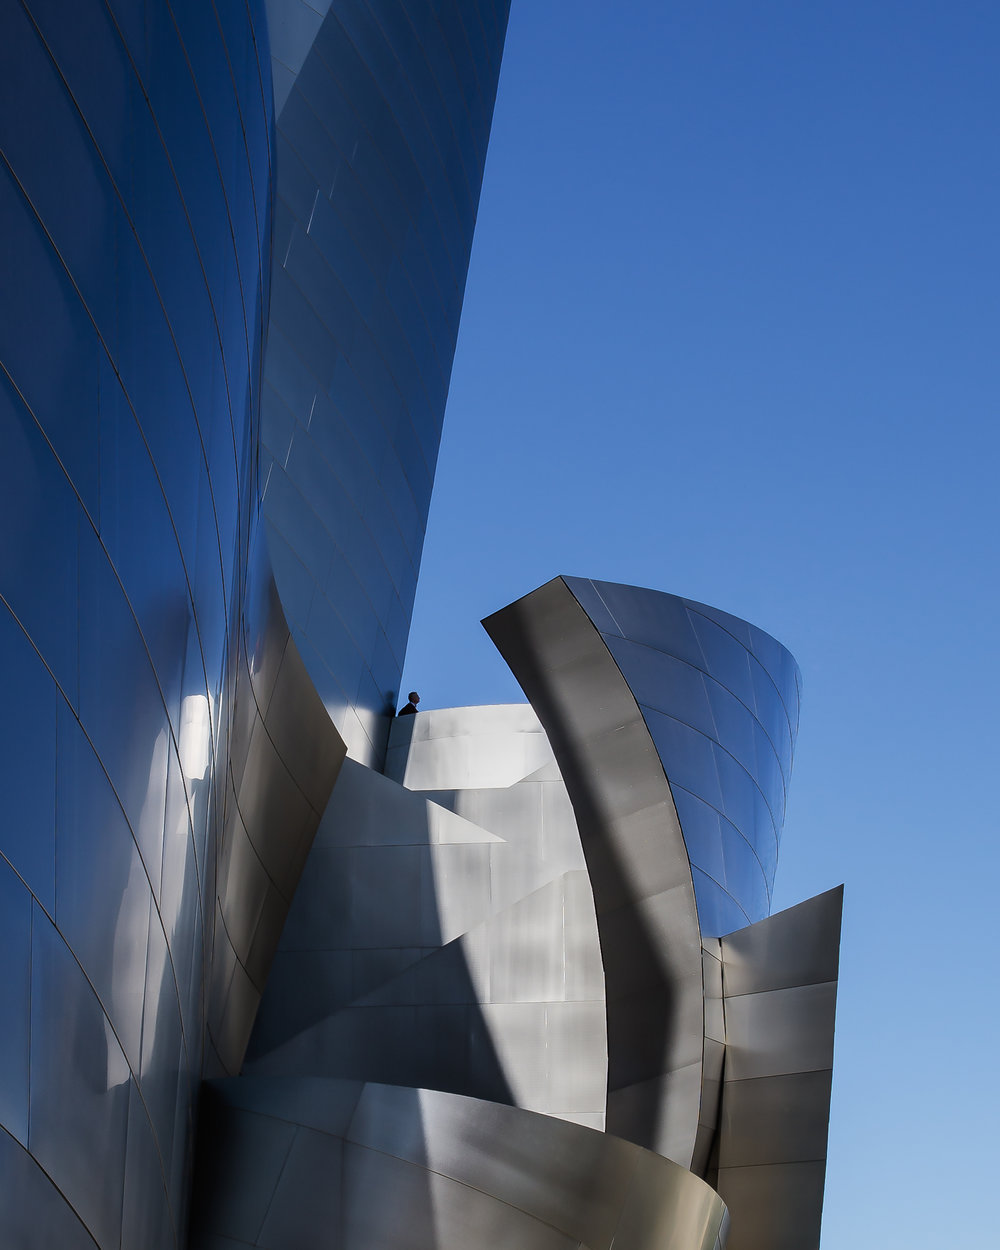 2016 Broad_Disney Concert Hall-258.jpg